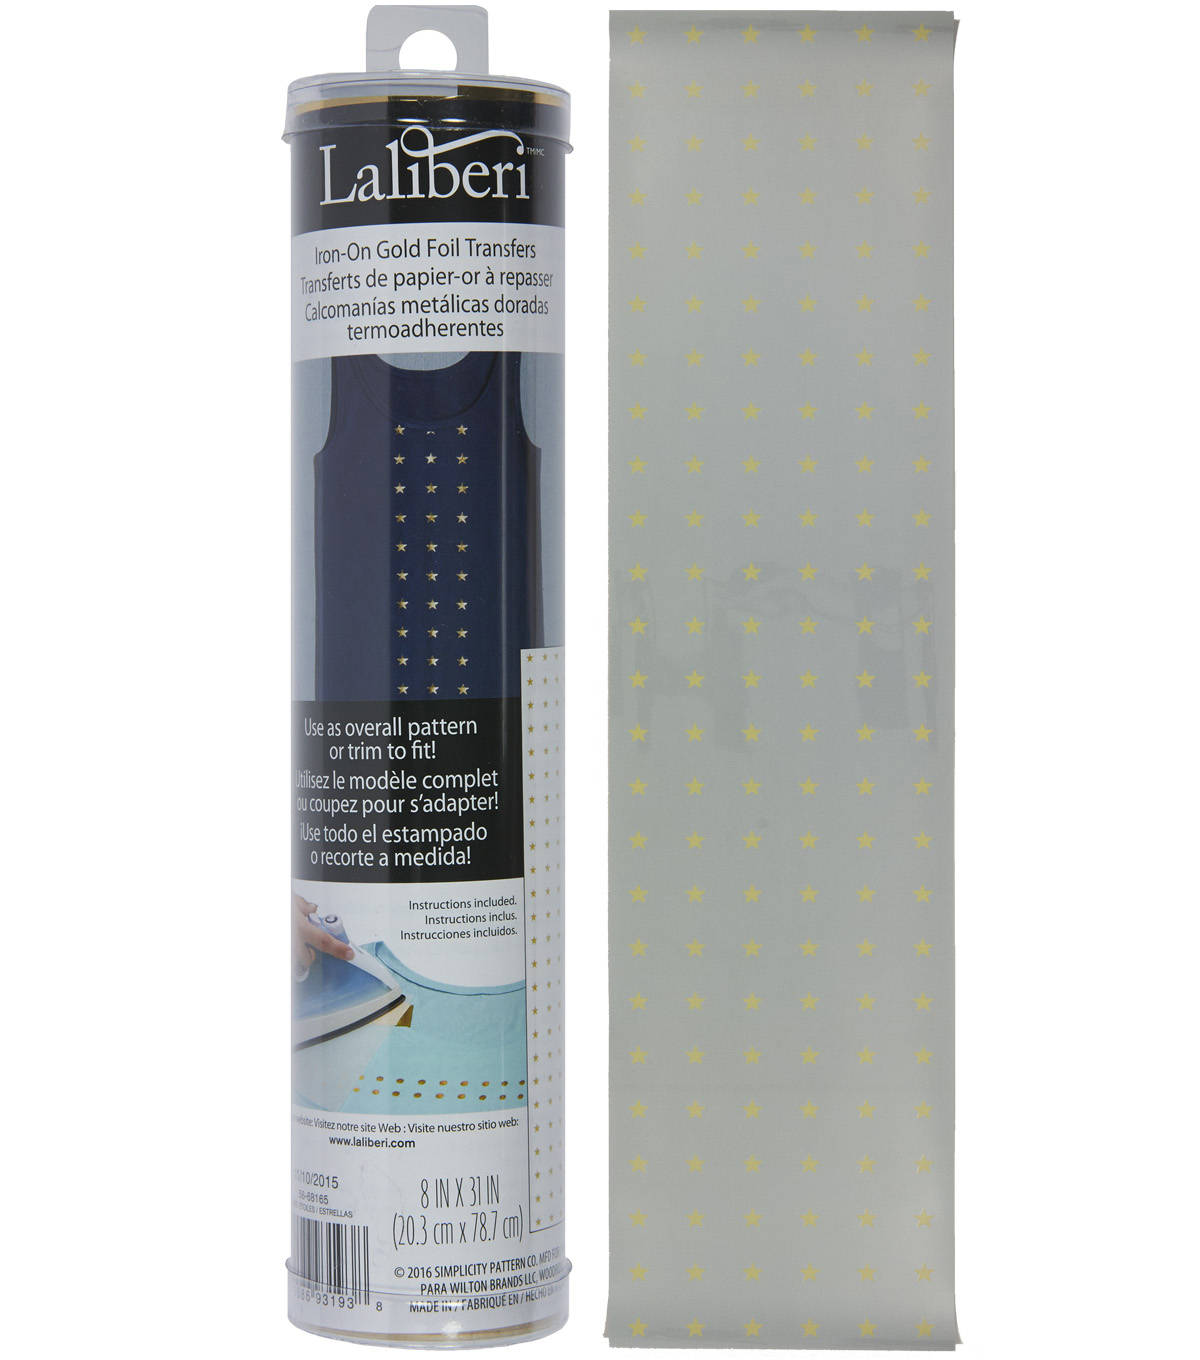 Laliberi™ Iron-On Gold Foil Transfer Roll-Stars